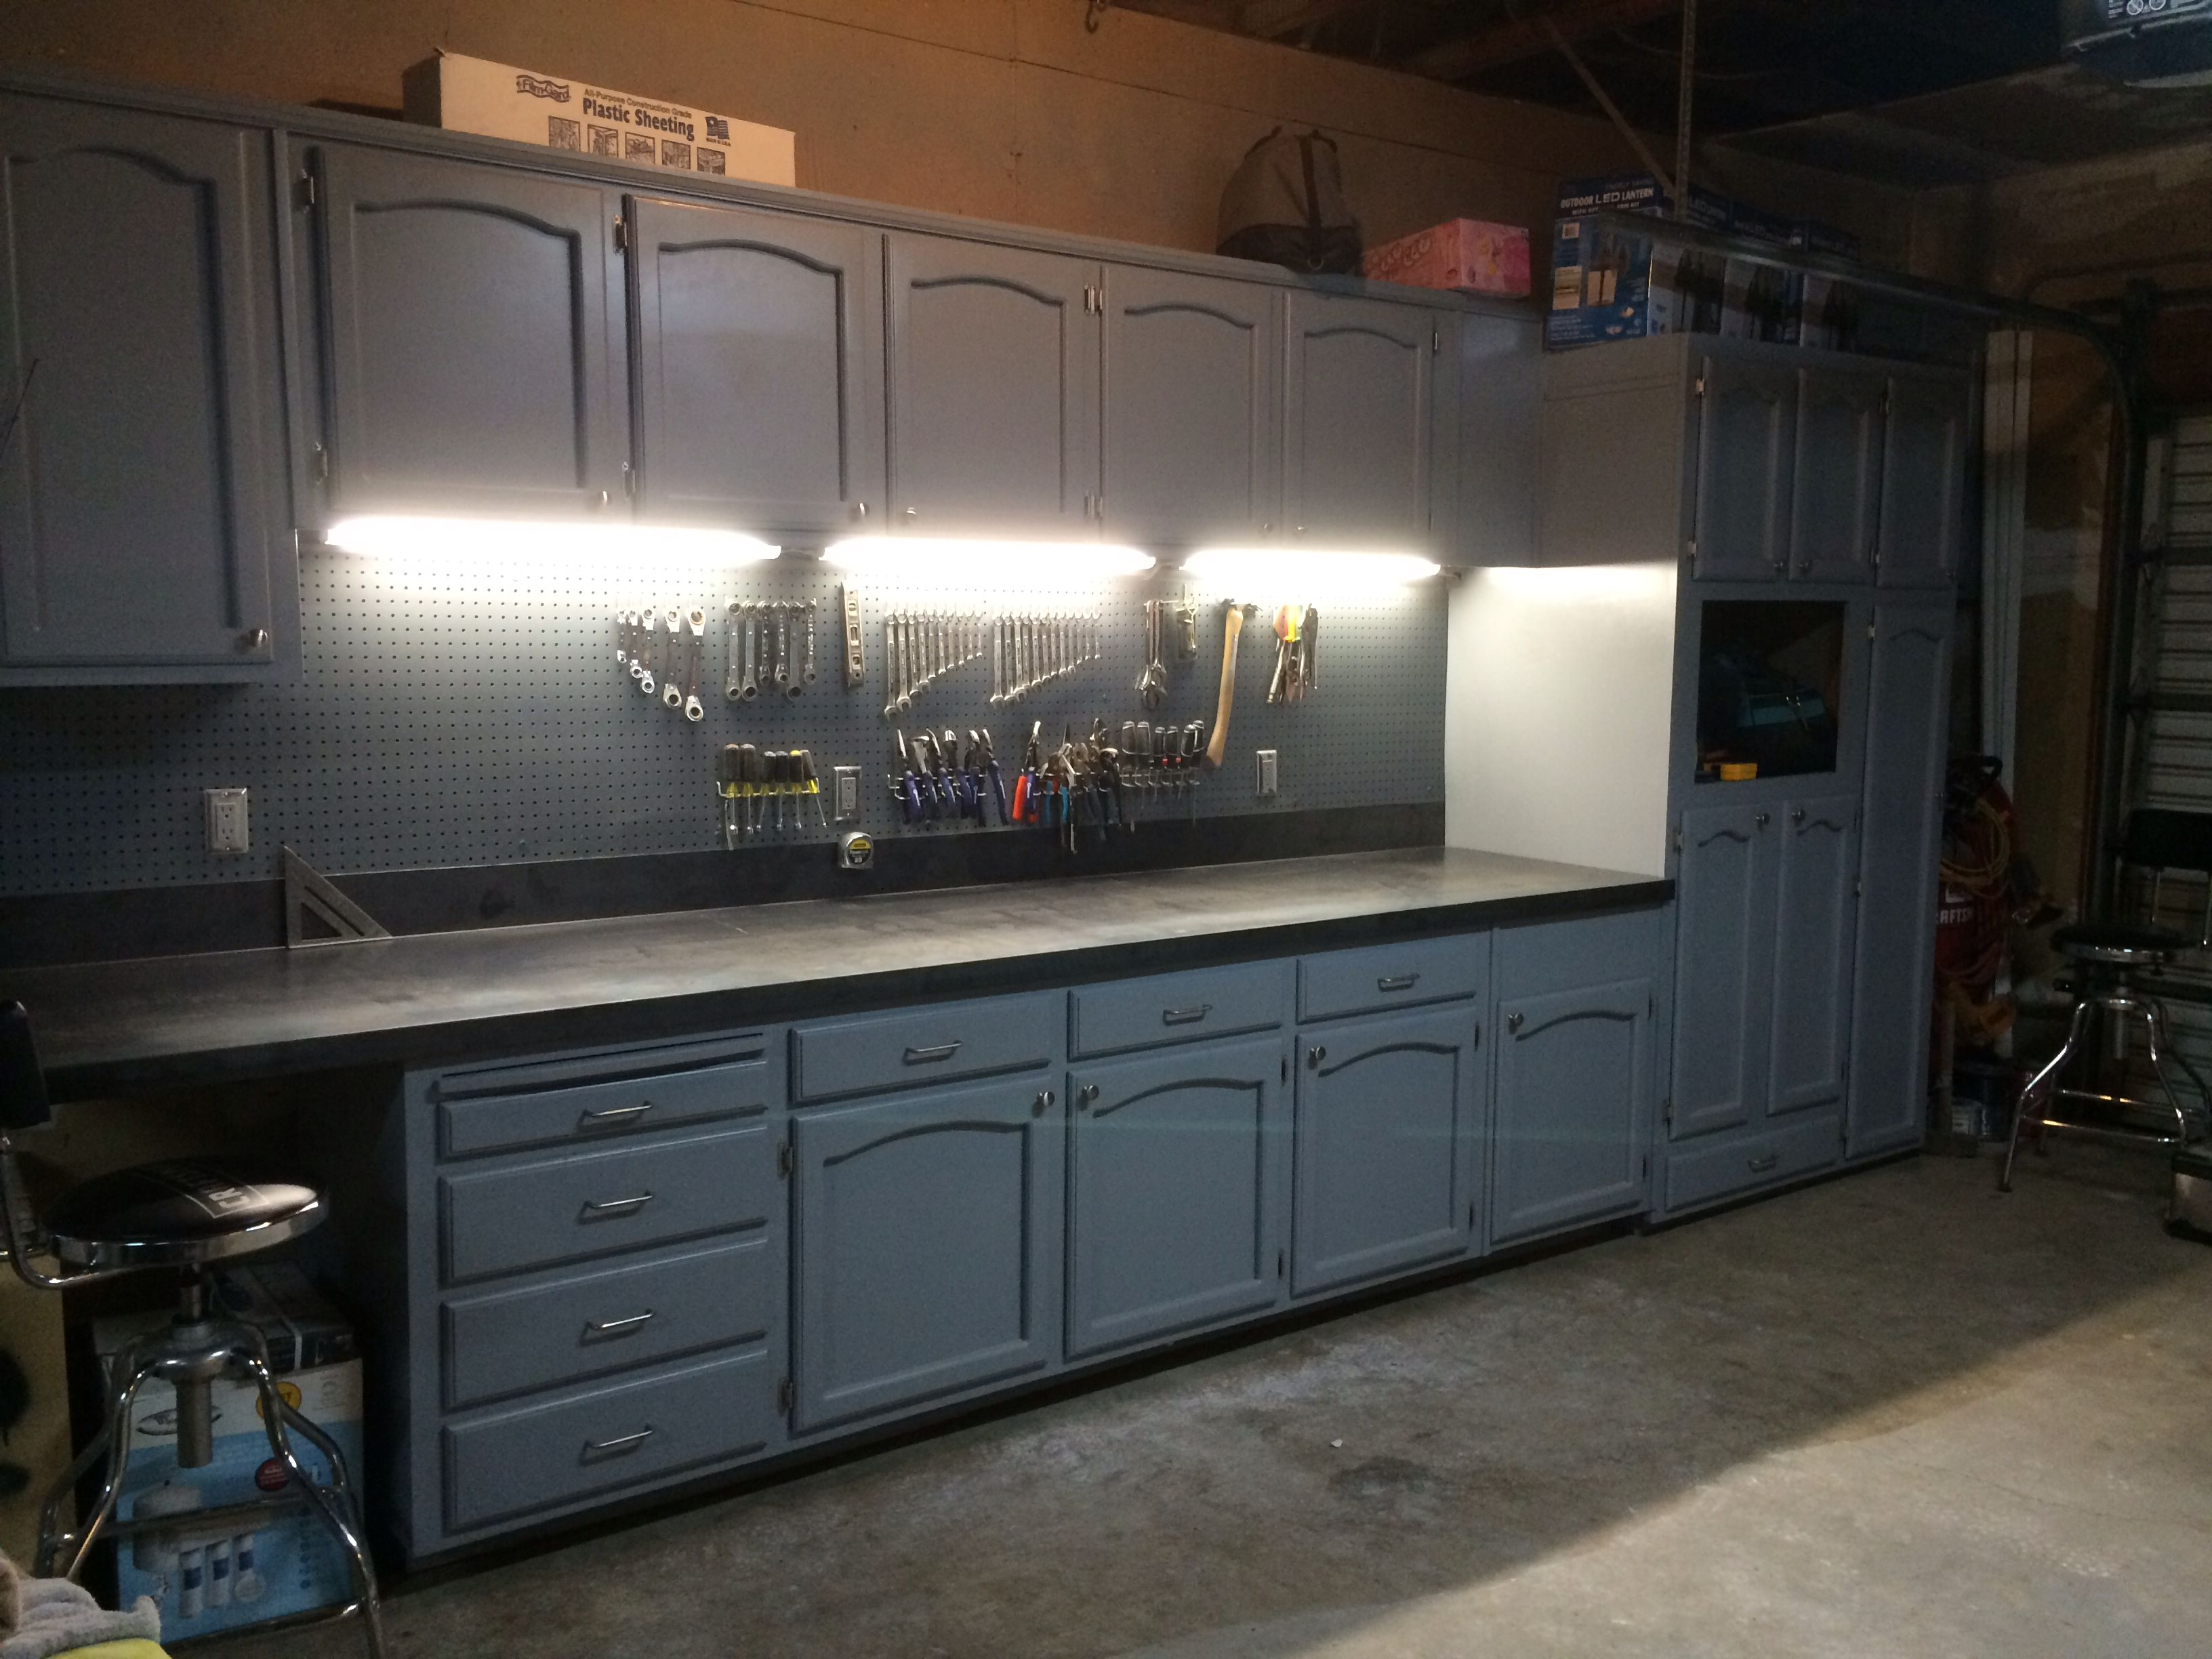 Refurbished kitchen cabinets for the ultimate work bench! | garage ...